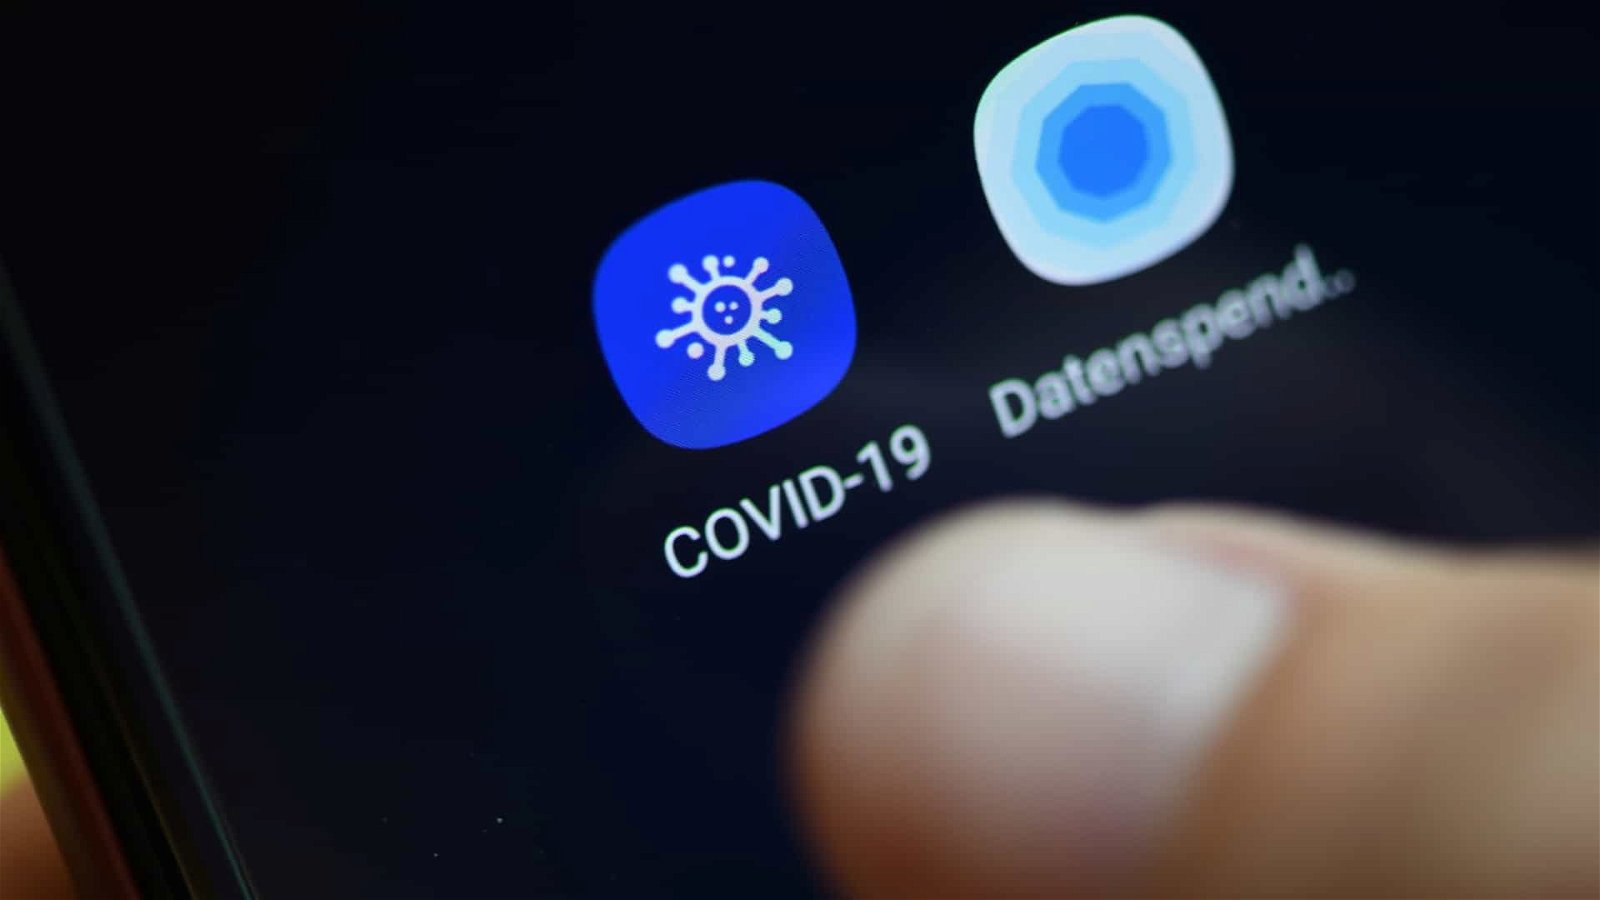 COVID-19, contact tracing app privacy